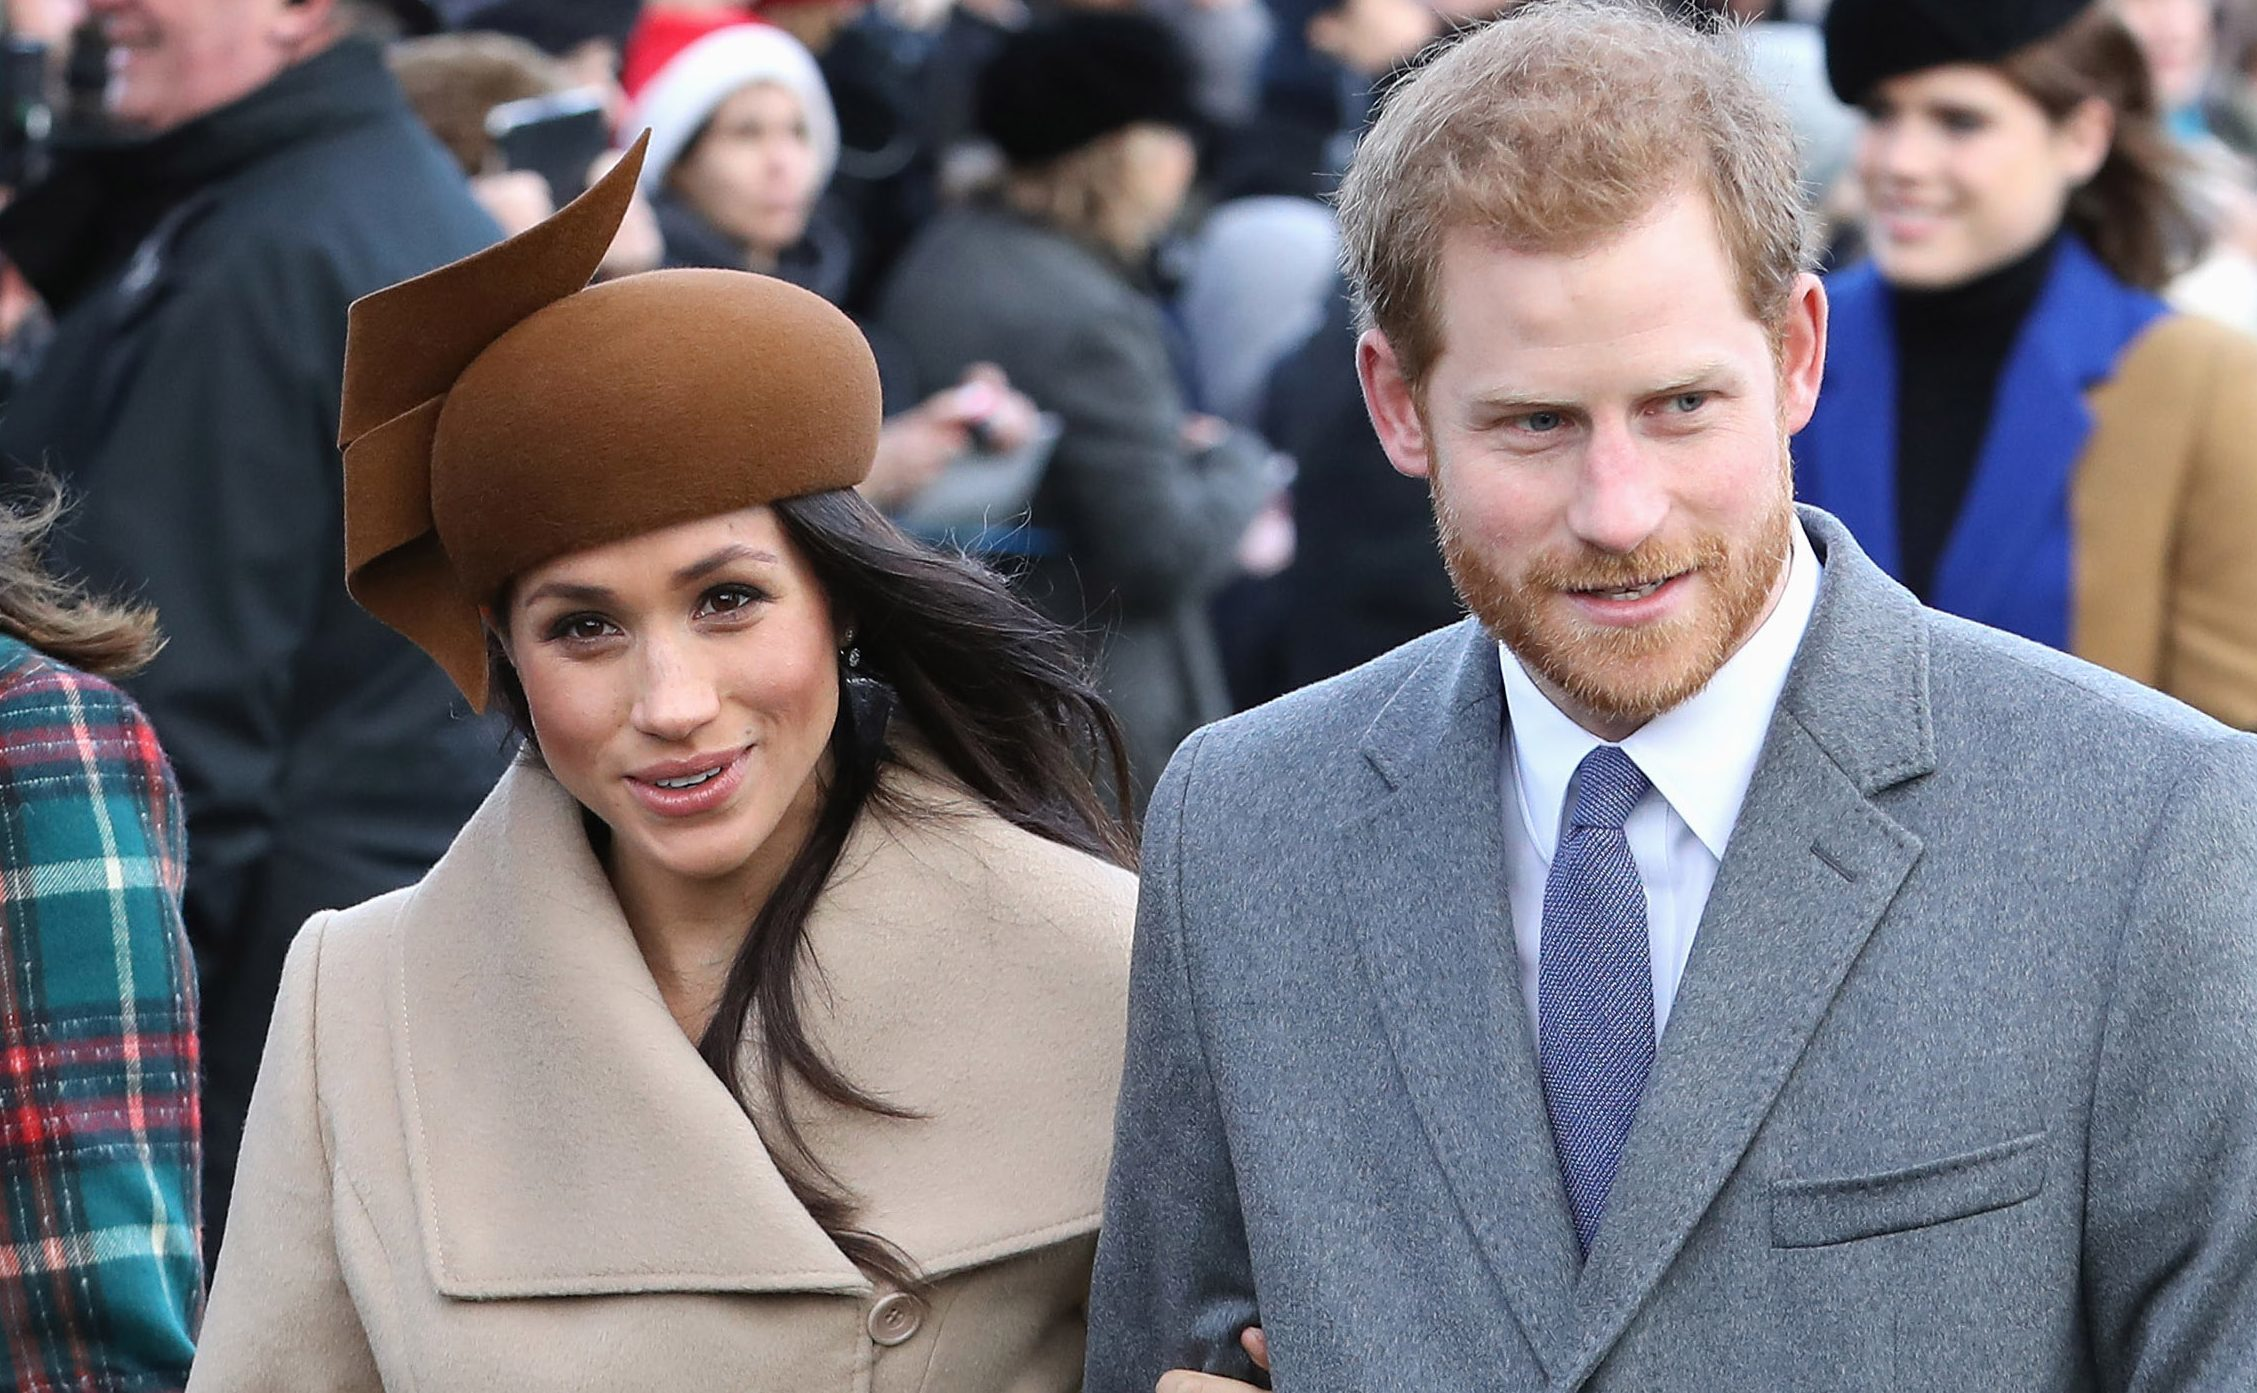 Meghan Markle and Prince Harry (Chris Jackson/Getty Images)